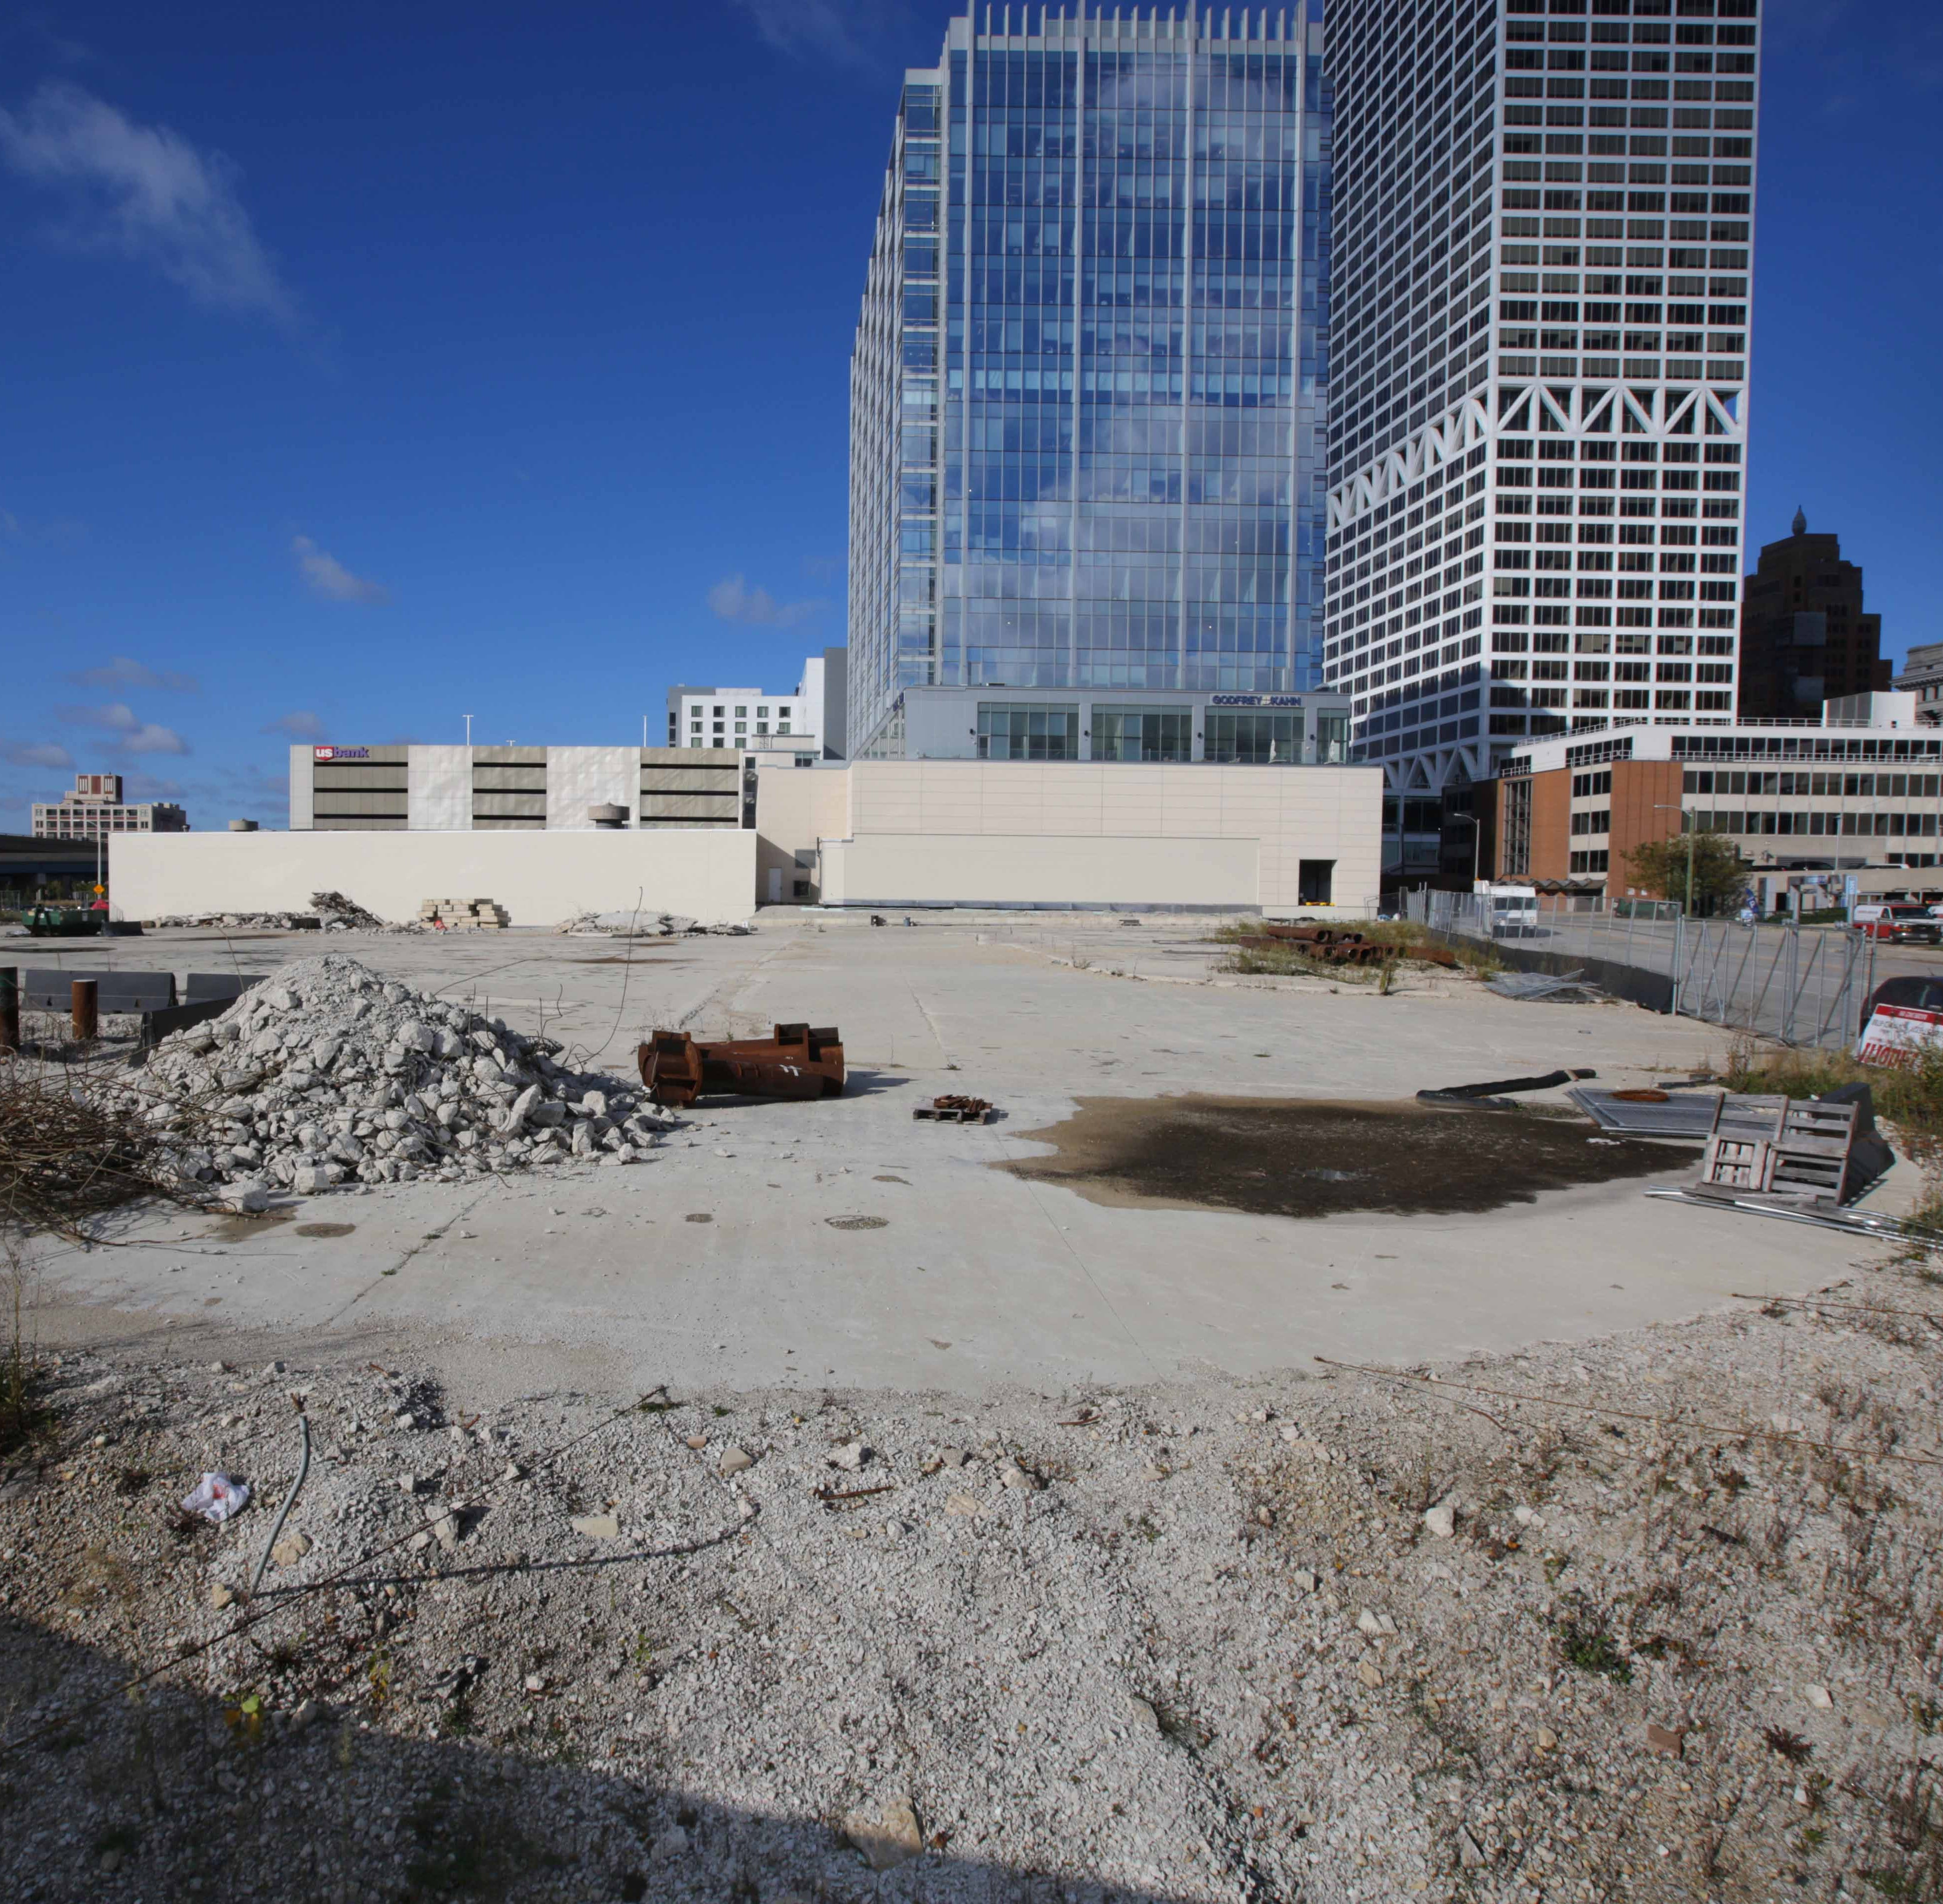 Couture's delays led to default notice as Milwaukee officials wait for construction start